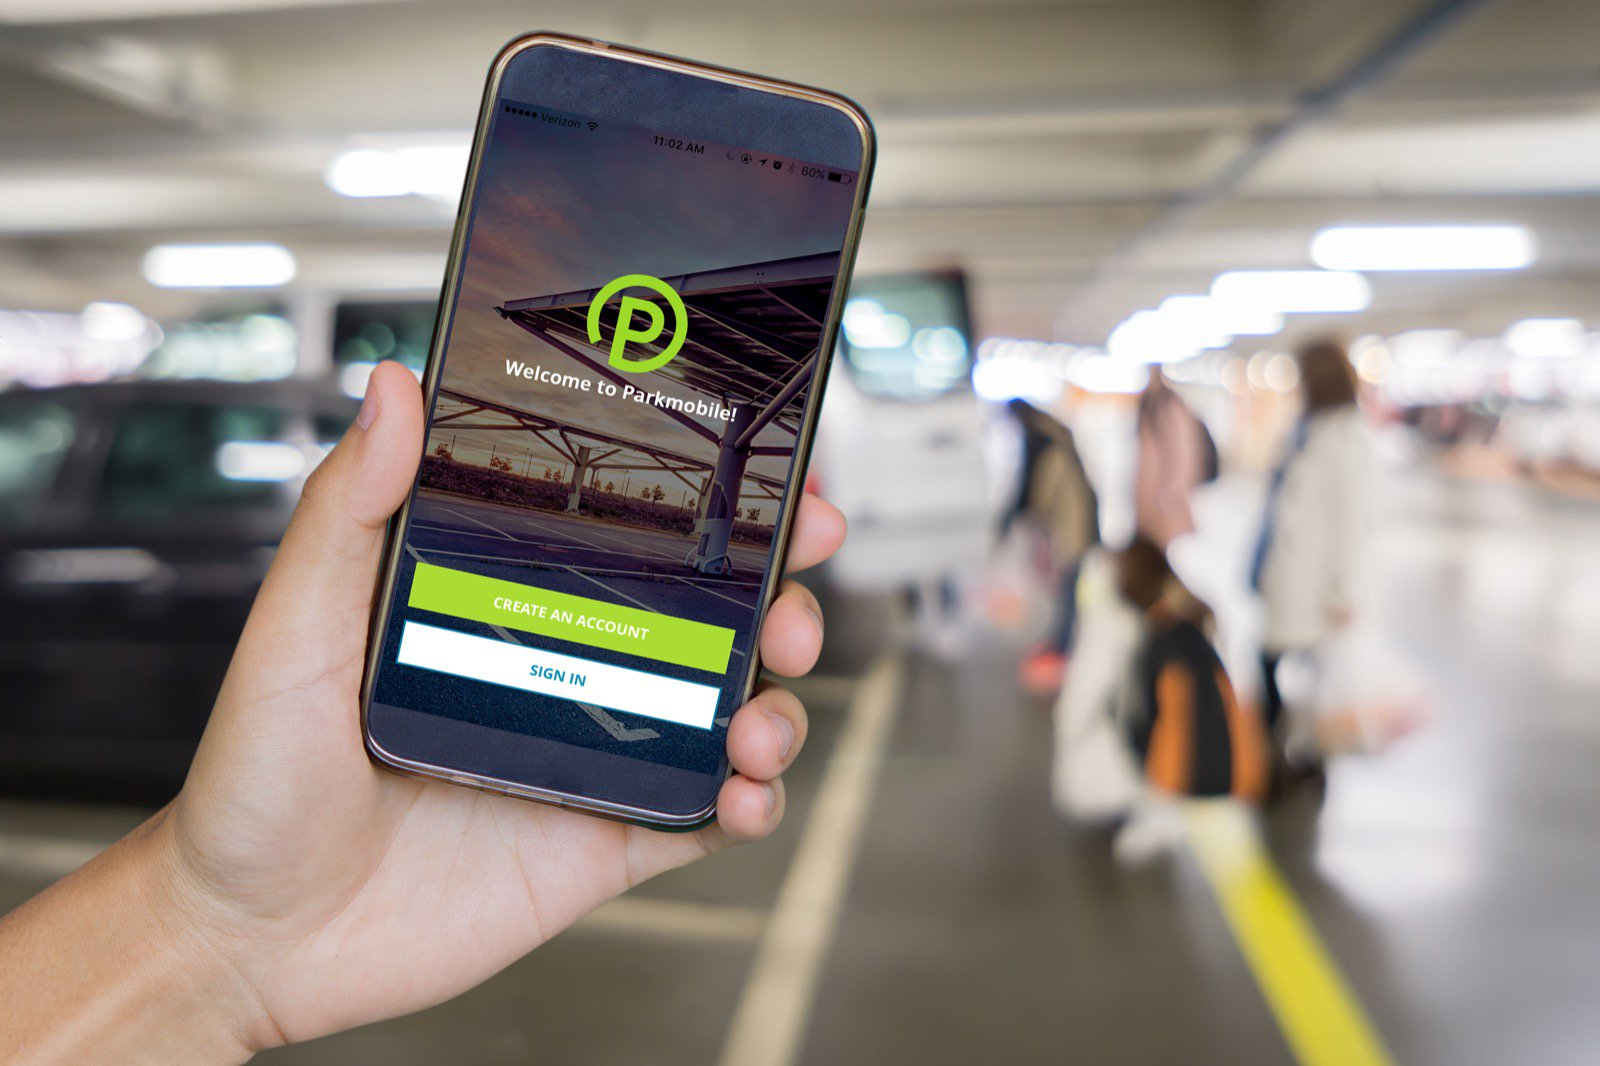 BMW acquires Parkmobile parking app to help tackle city traffic https://t.co/UPXoJZoYNz by @etherington https://t.co/s4VyYbkycB